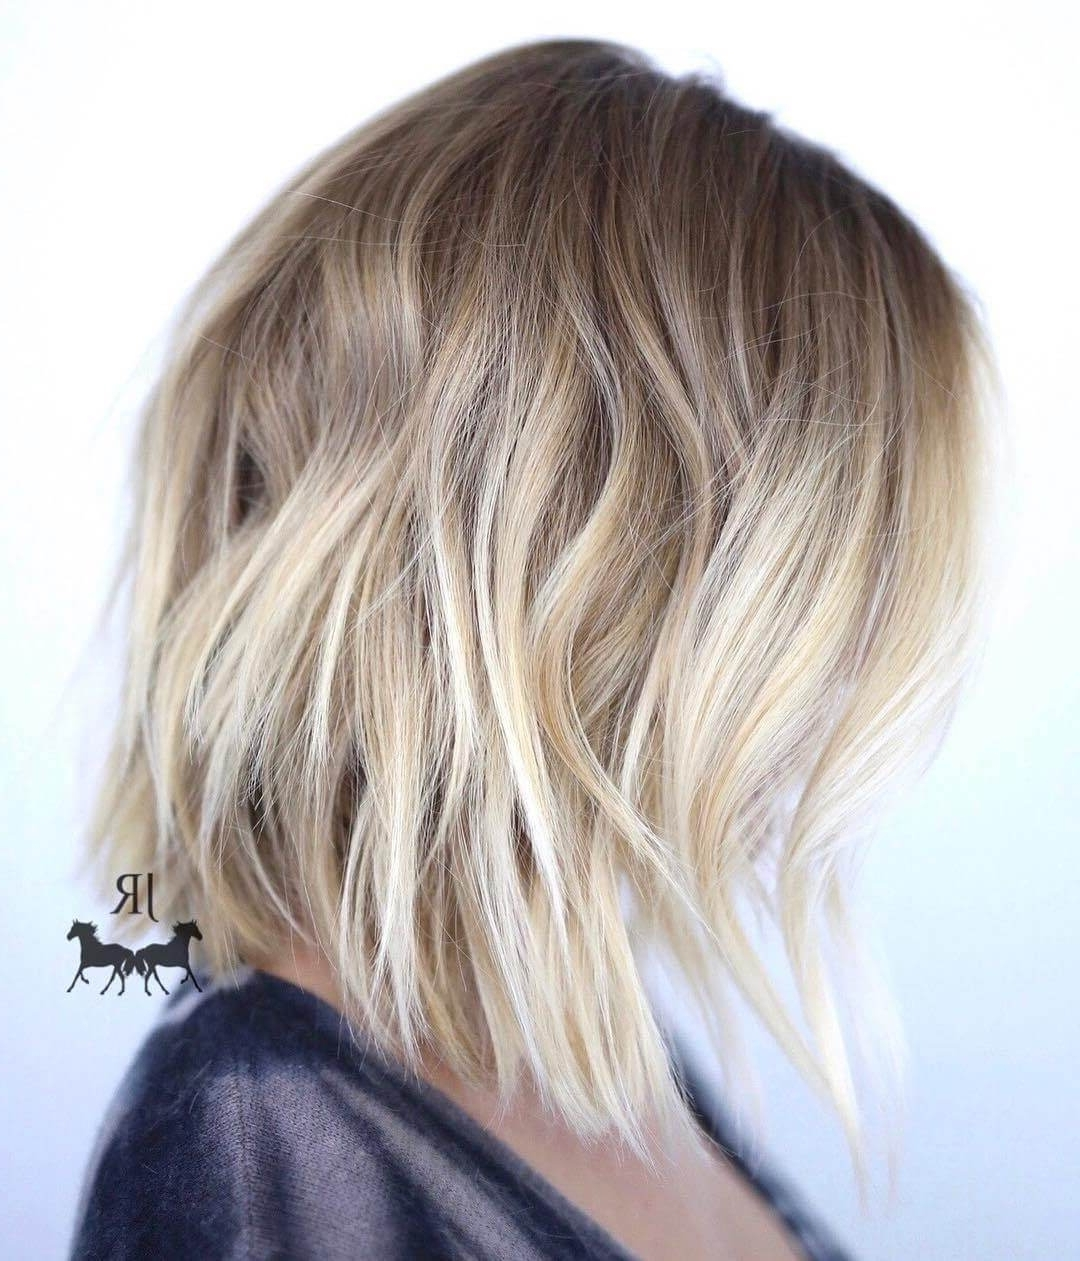 50 Fresh Short Blonde Hair Ideas To Update Your Style In 2018 With Regard To 2017 Dirty Blonde Bob Hairstyles (View 3 of 20)